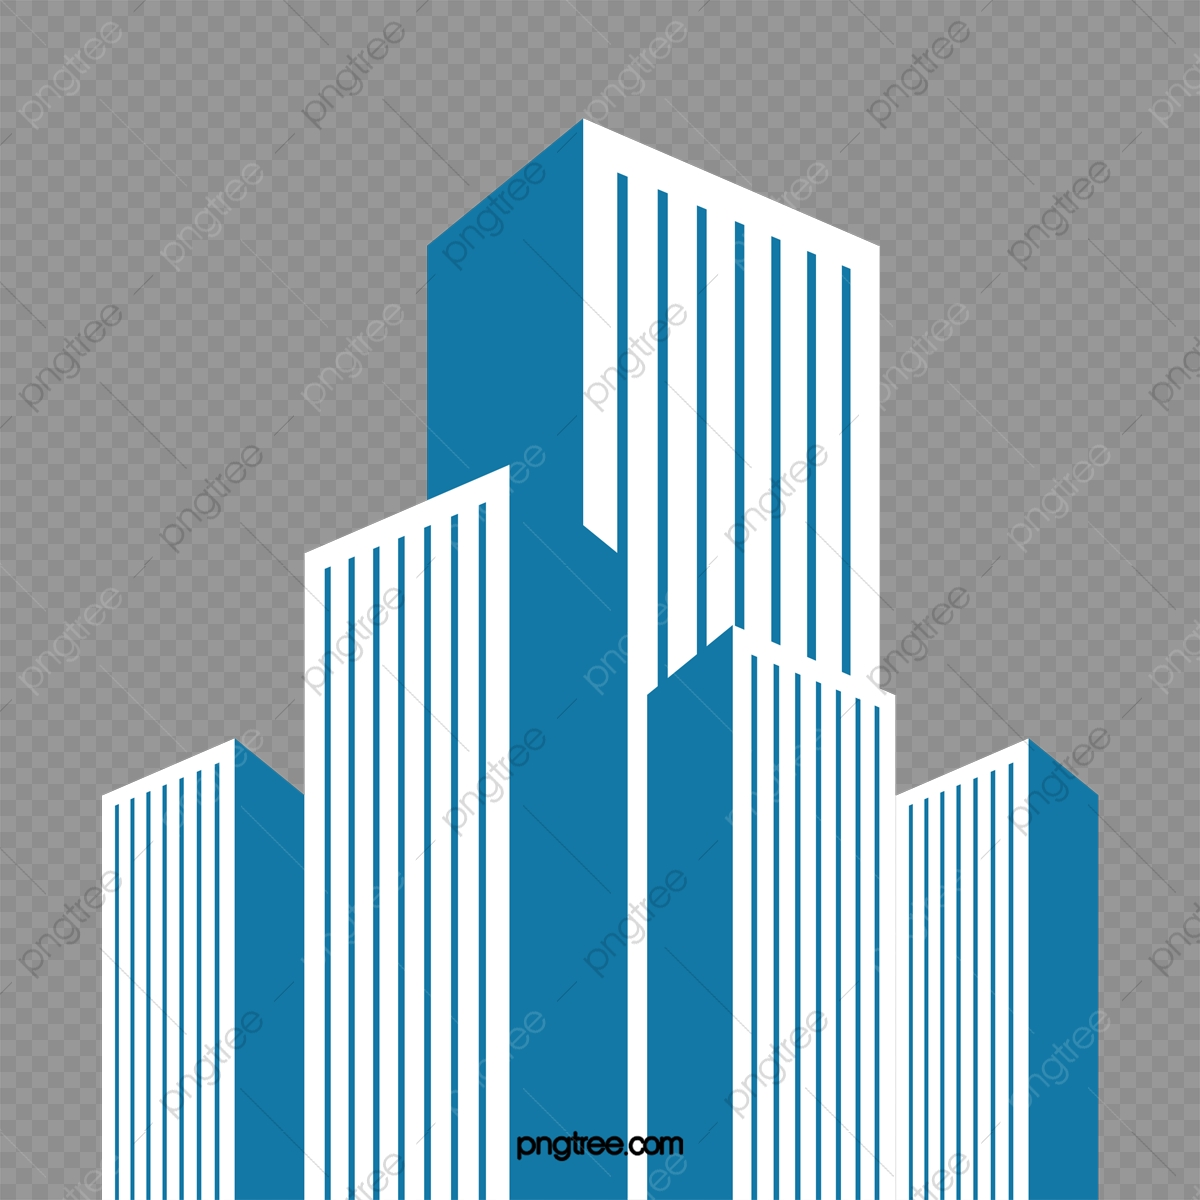 Building Vector, Simple, Blue PNG and Vector with Transparent Background for Free Download